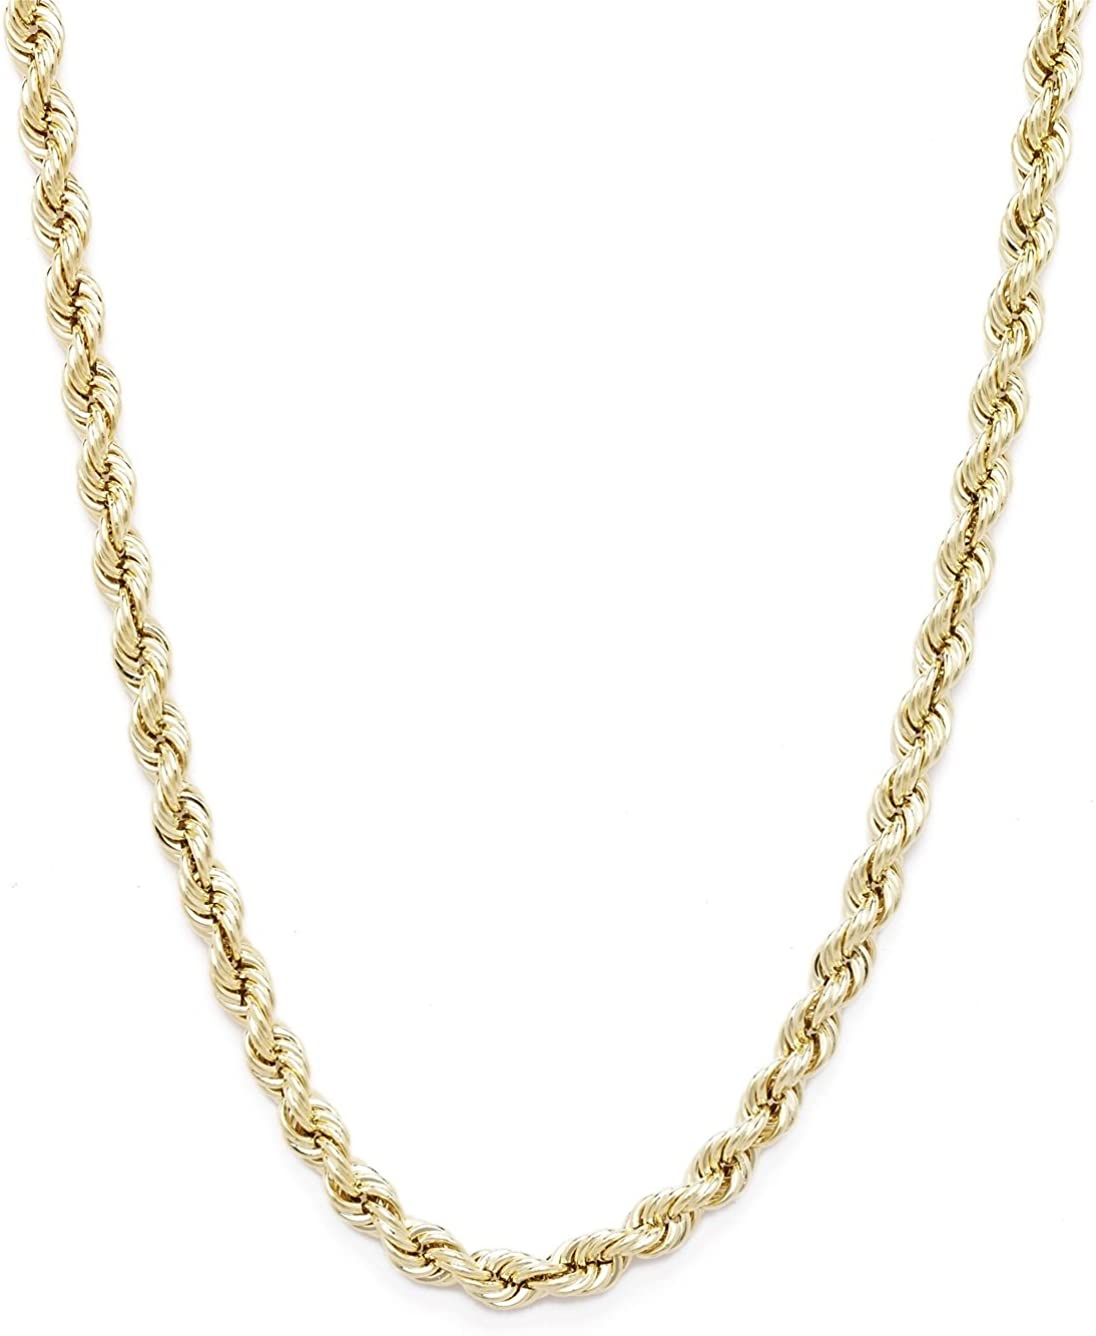 Floreo 10k Yellow Gold 2.5mm Hollow Rope Chain Necklace with Lobster Claw Clasp